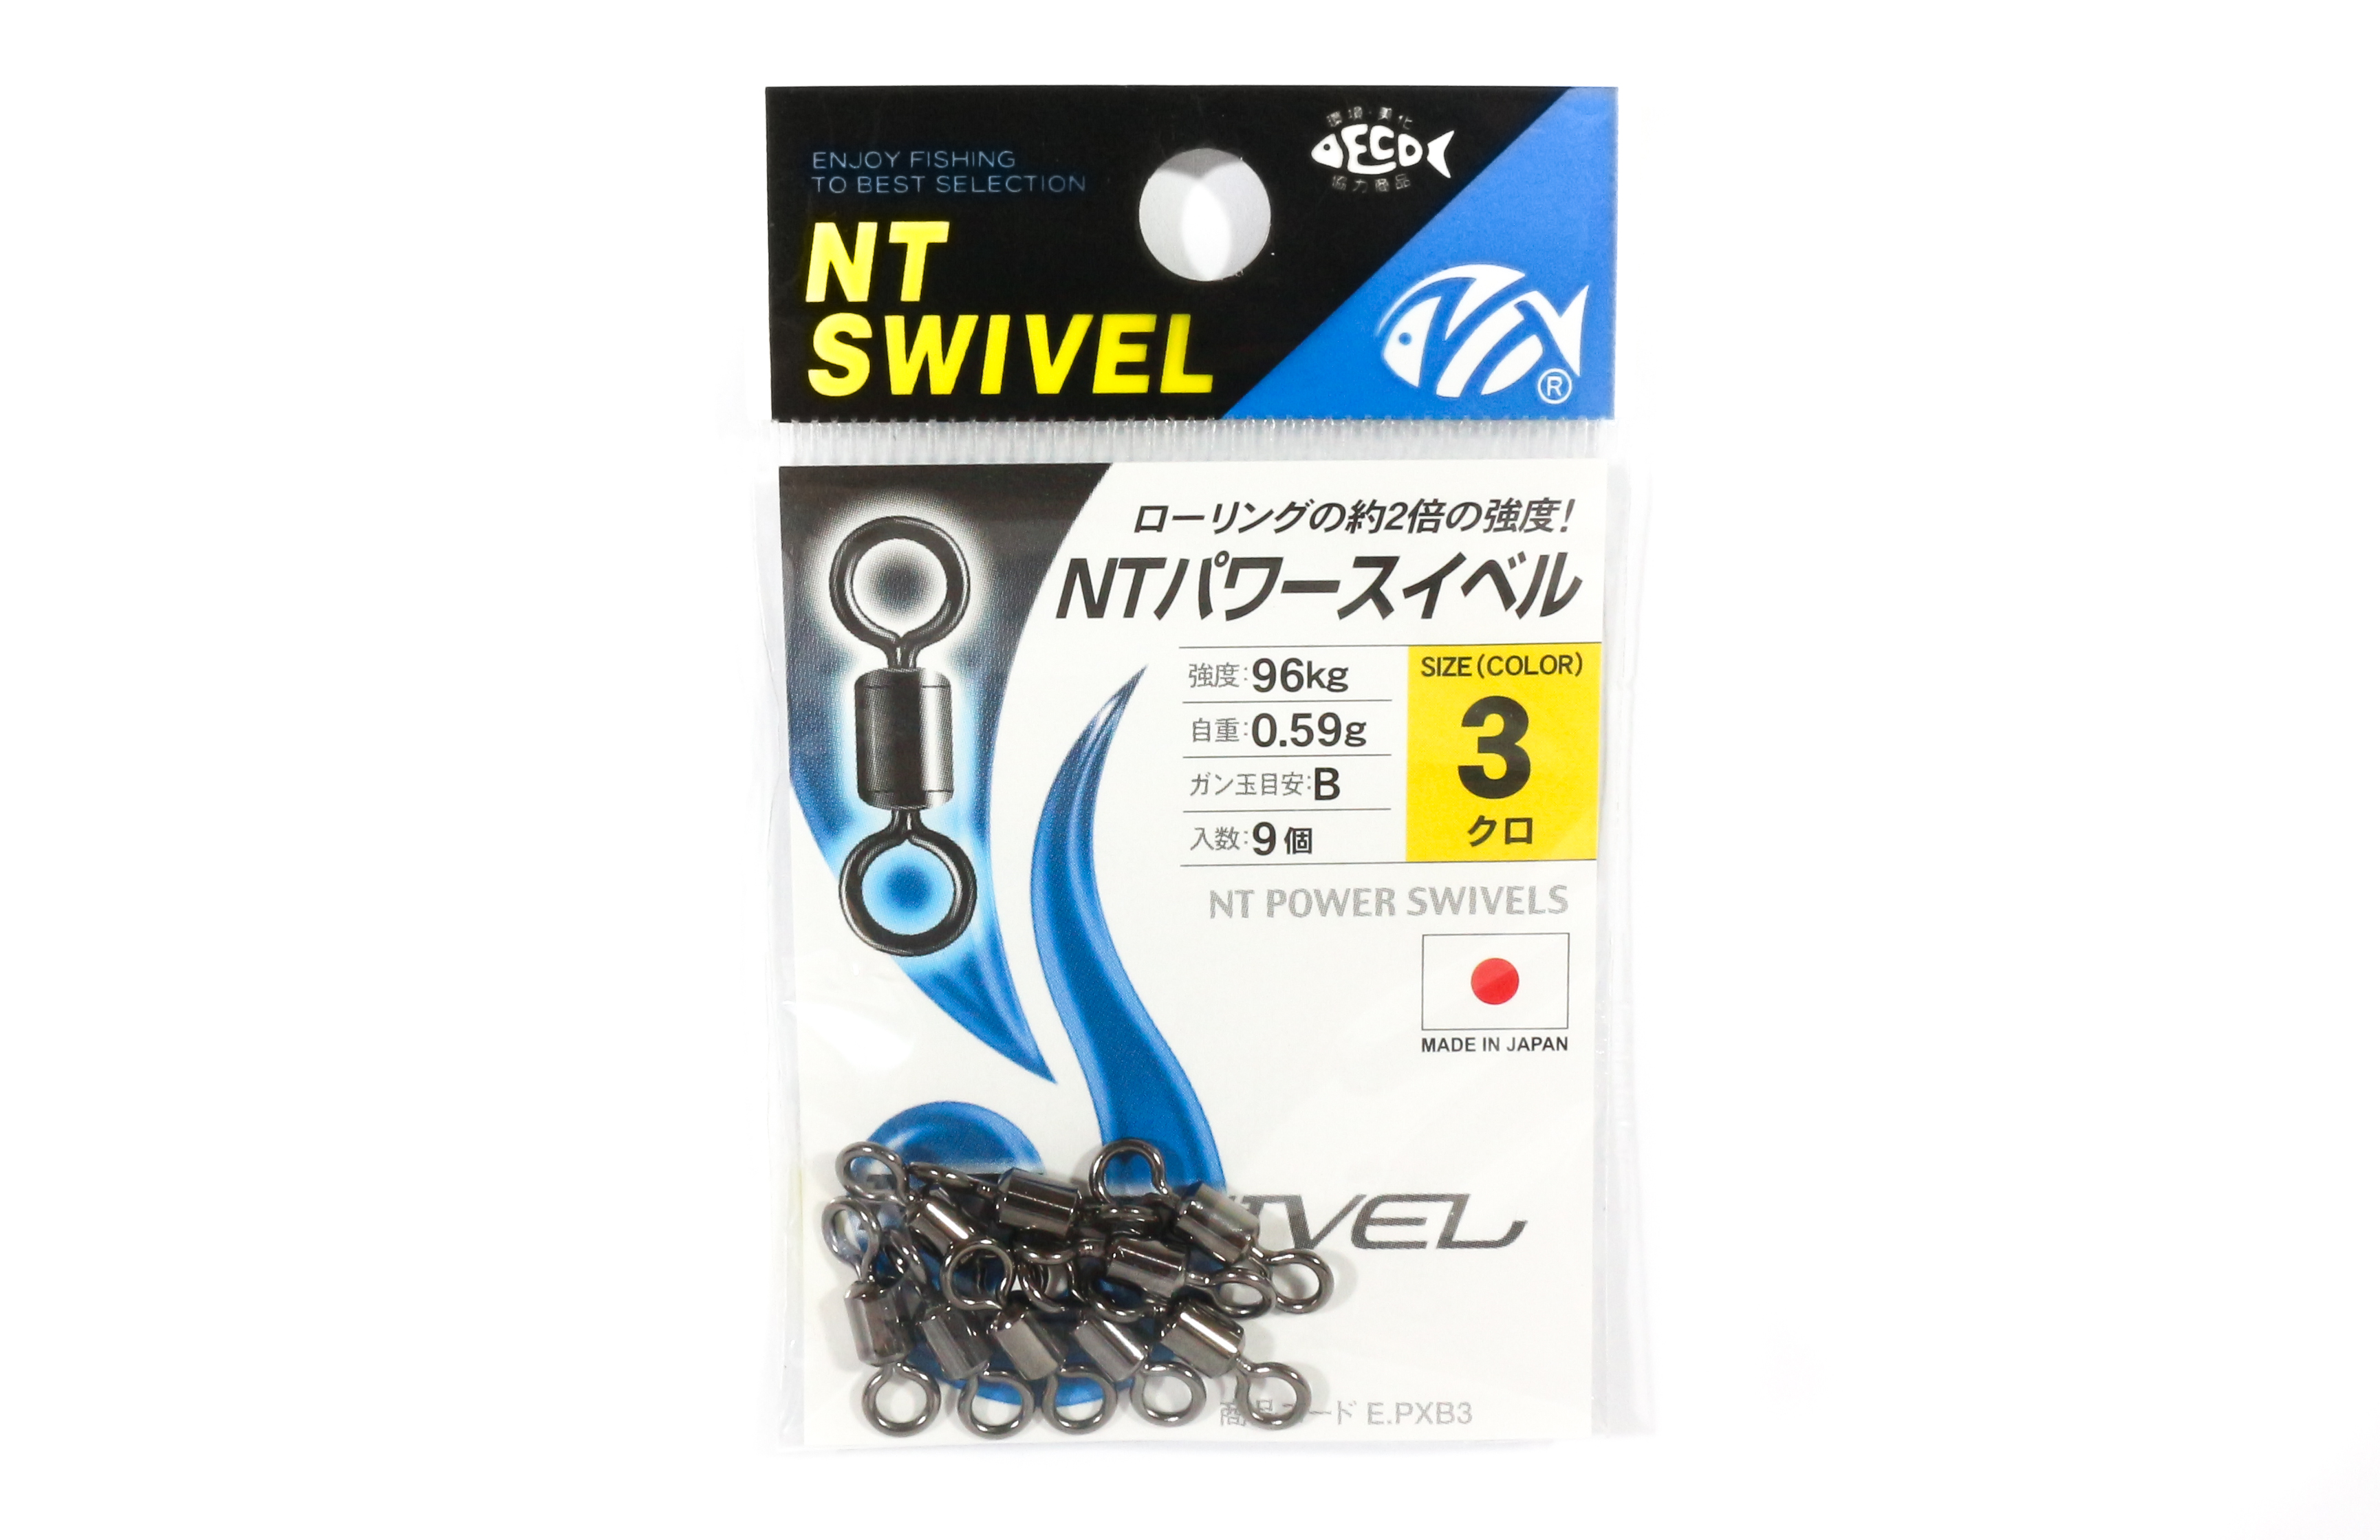 NT Power Swivel E.PXB Small Pack Size 3 (0289)